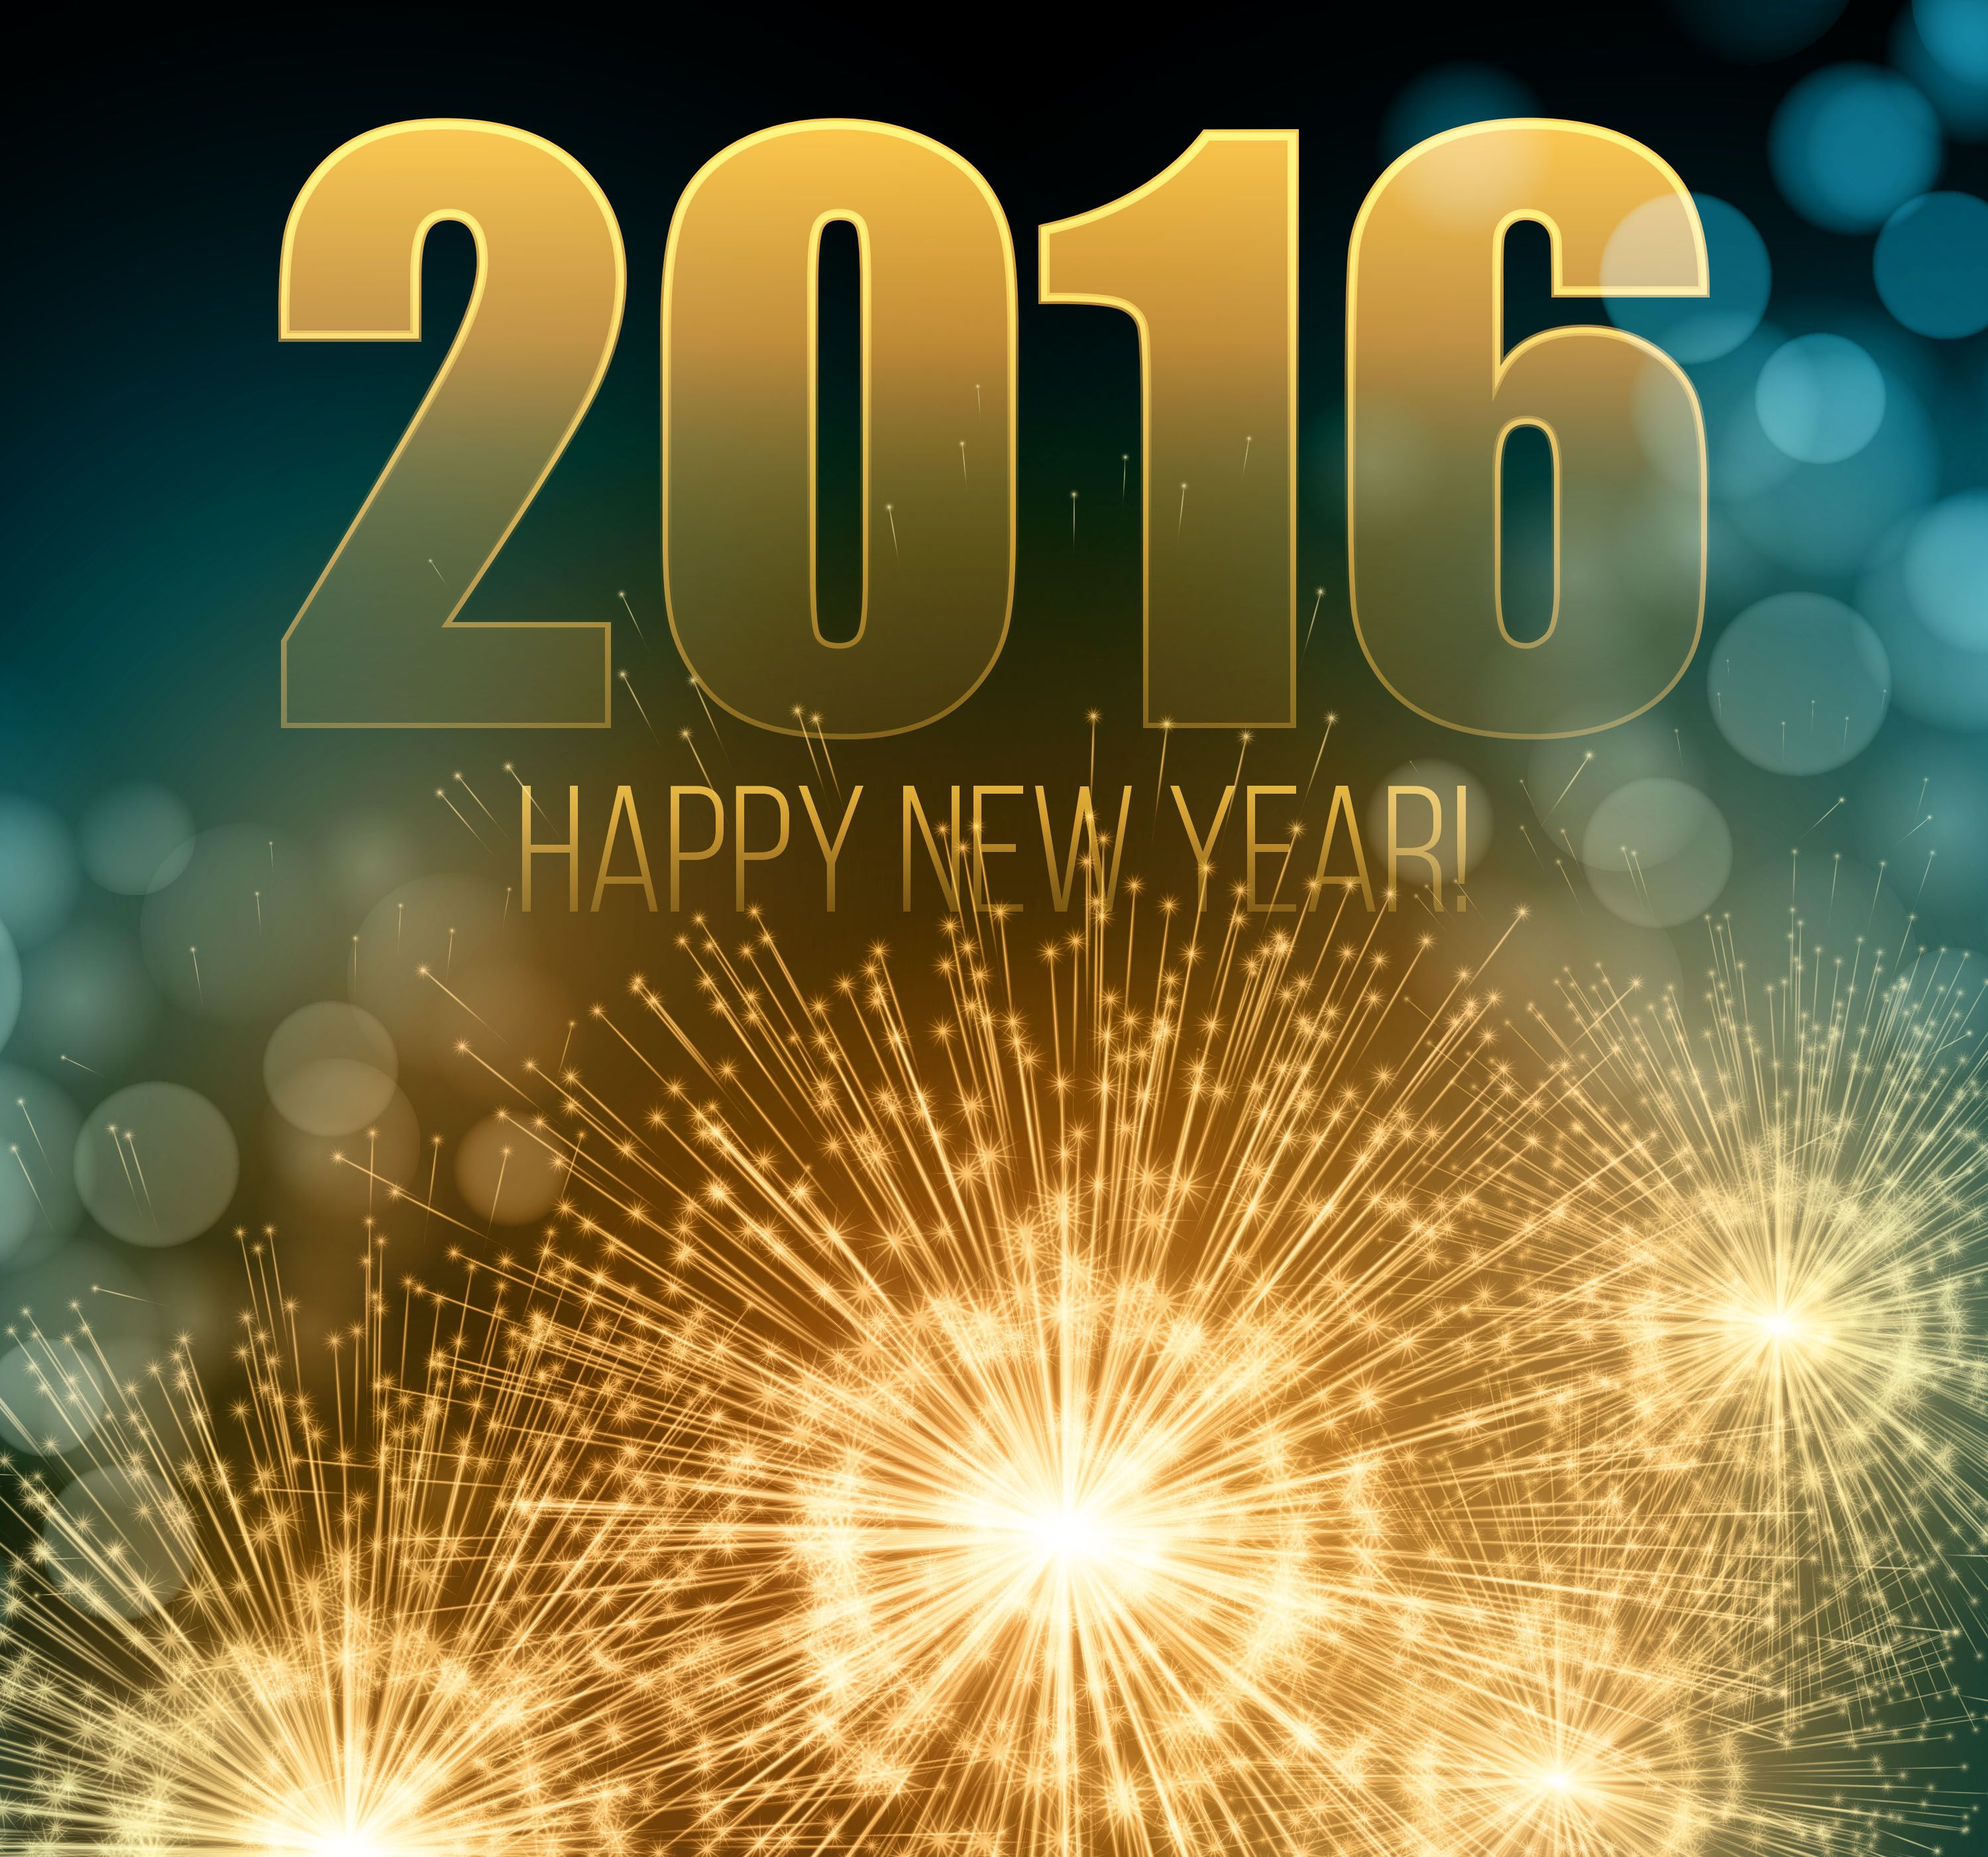 WIN Q PRIZES! Happy new year 2016, New years 2016, Happy